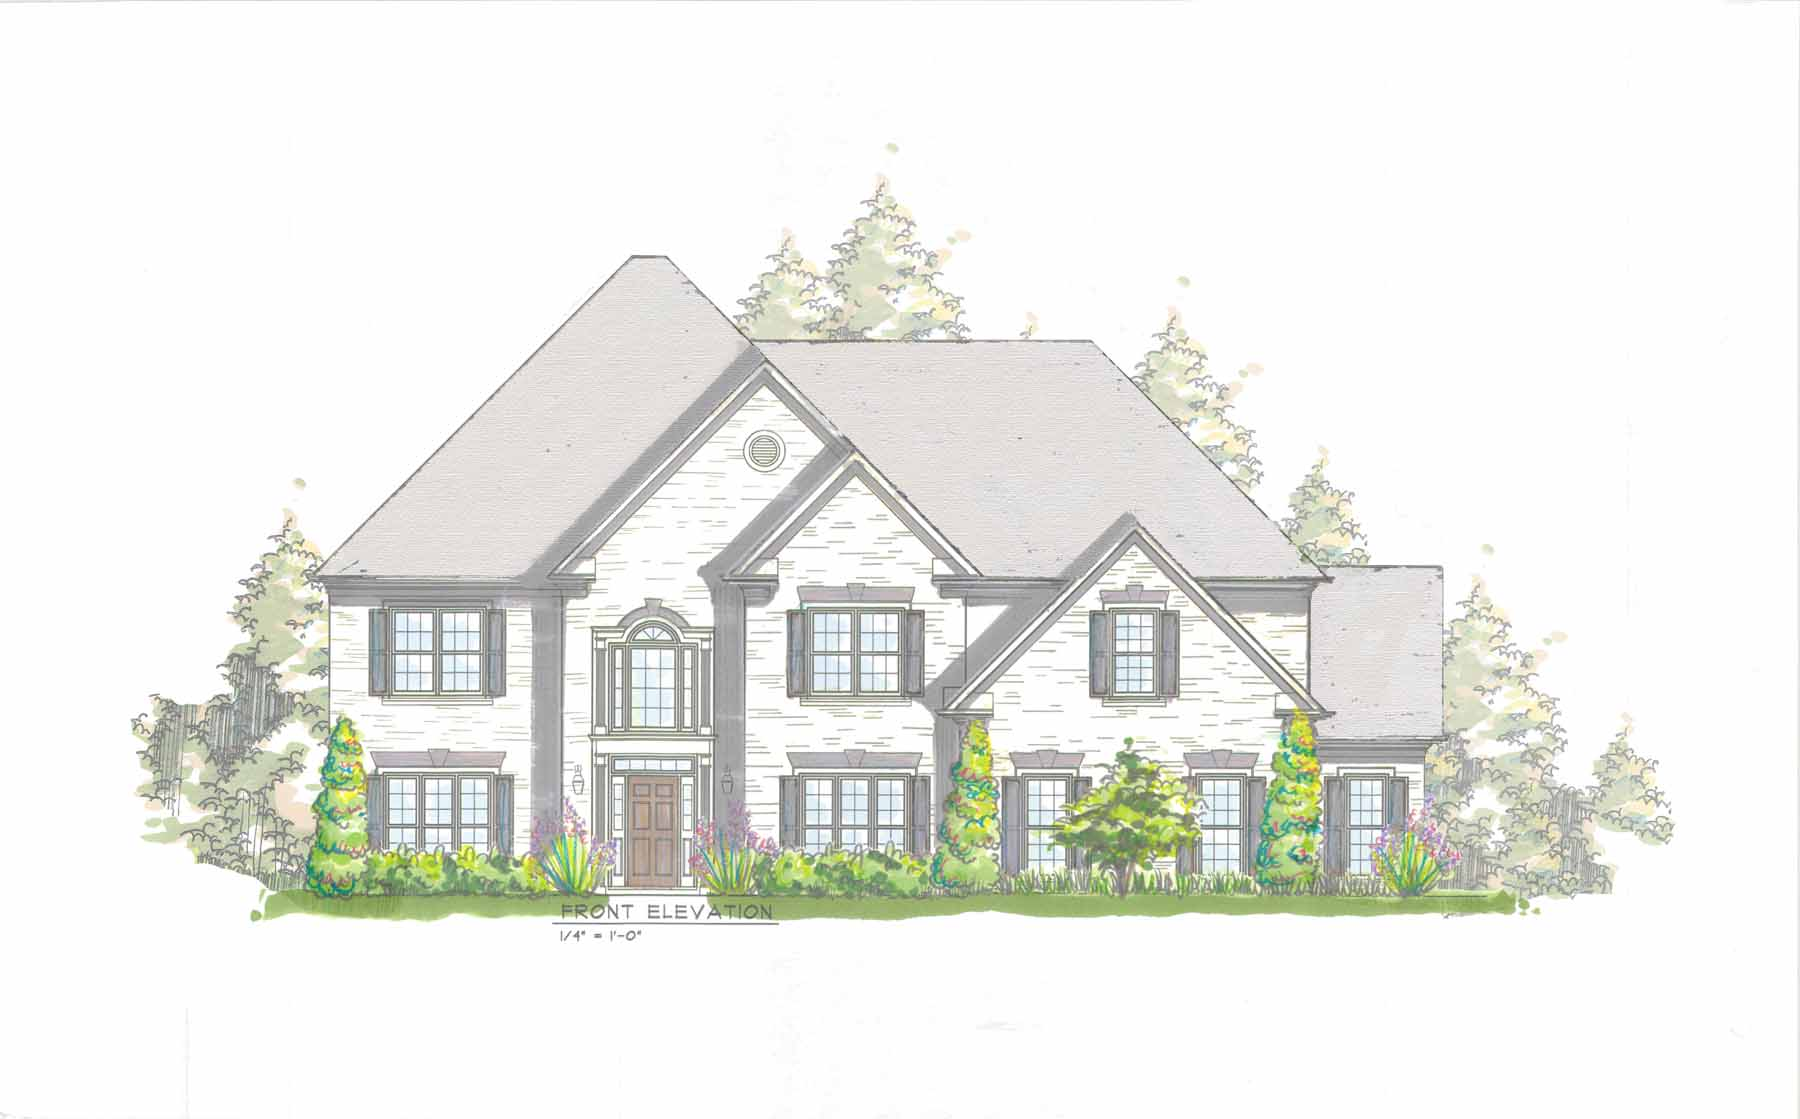 Casa Unifamiliar por un Venta en Beautiful New Build Near Chastain 4571 Dudley Lane Sandy Springs, Georgia, 30327 Estados Unidos